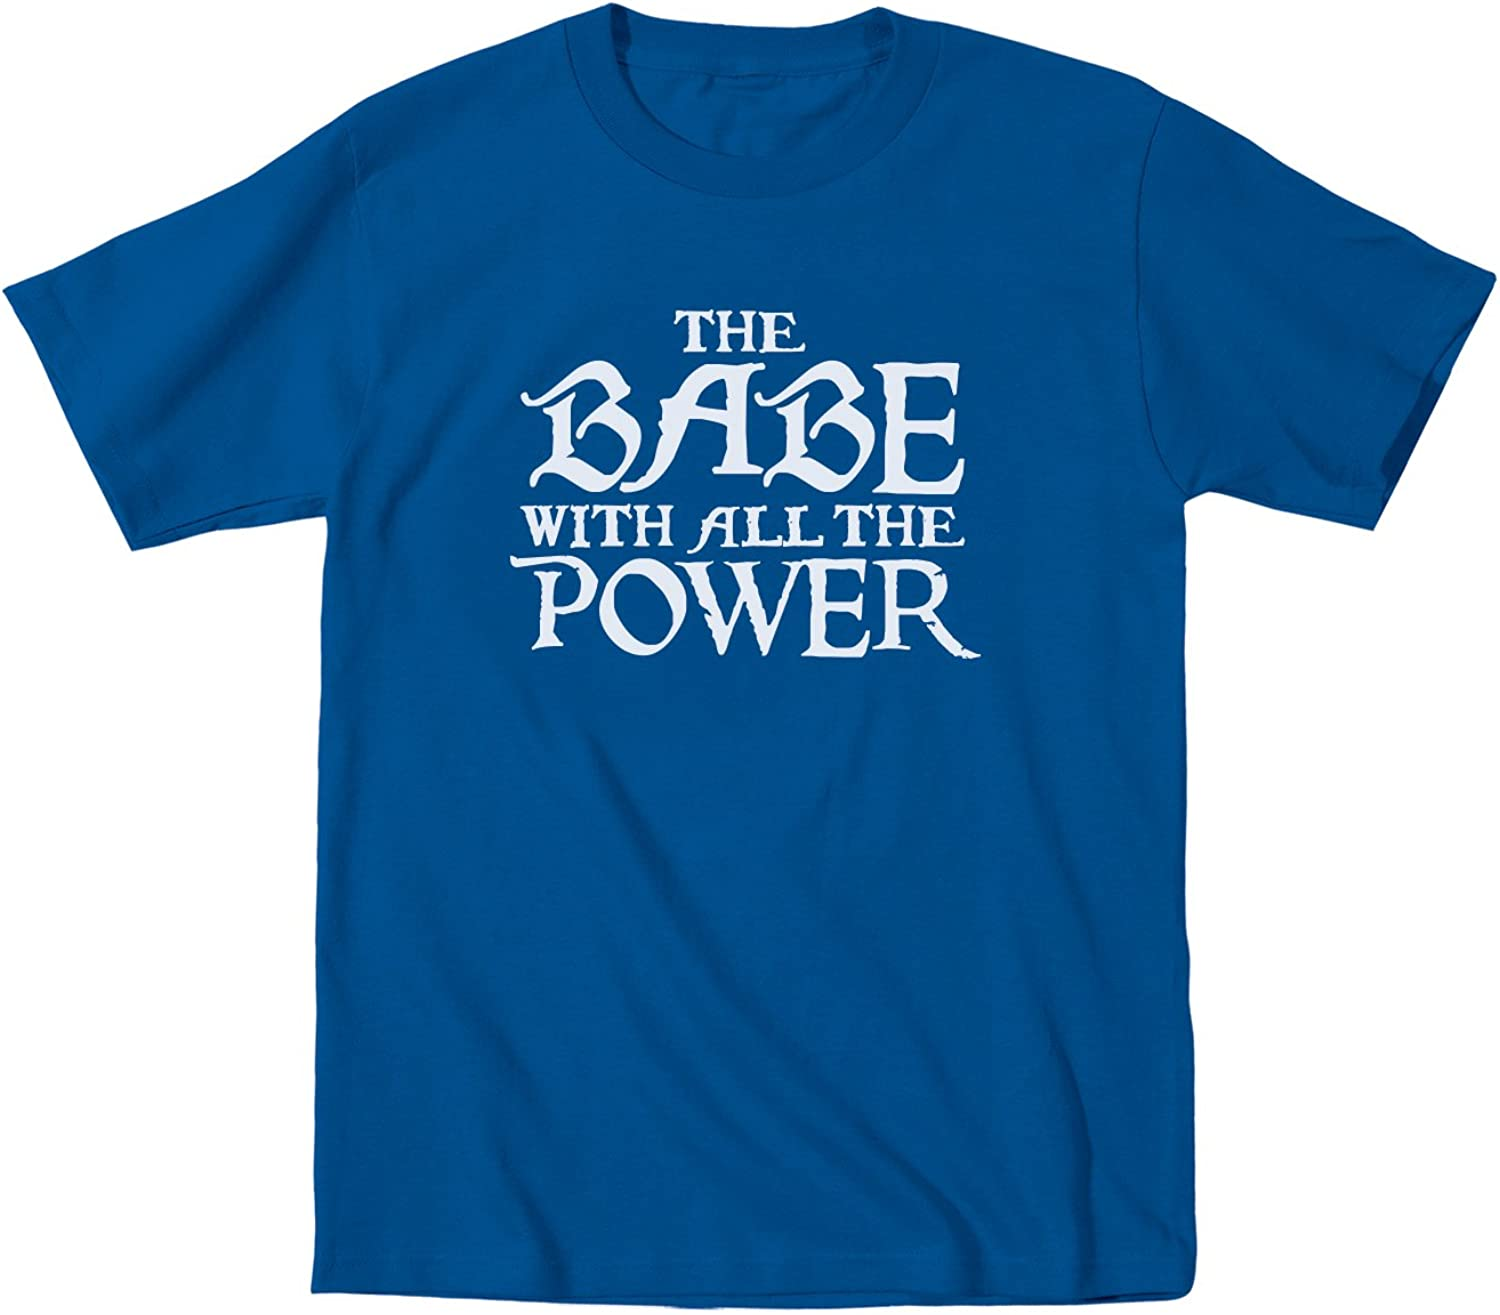 Instant Message The Babe with All The Power - Toddler Short Sleeve T-Shirt Royal Blue